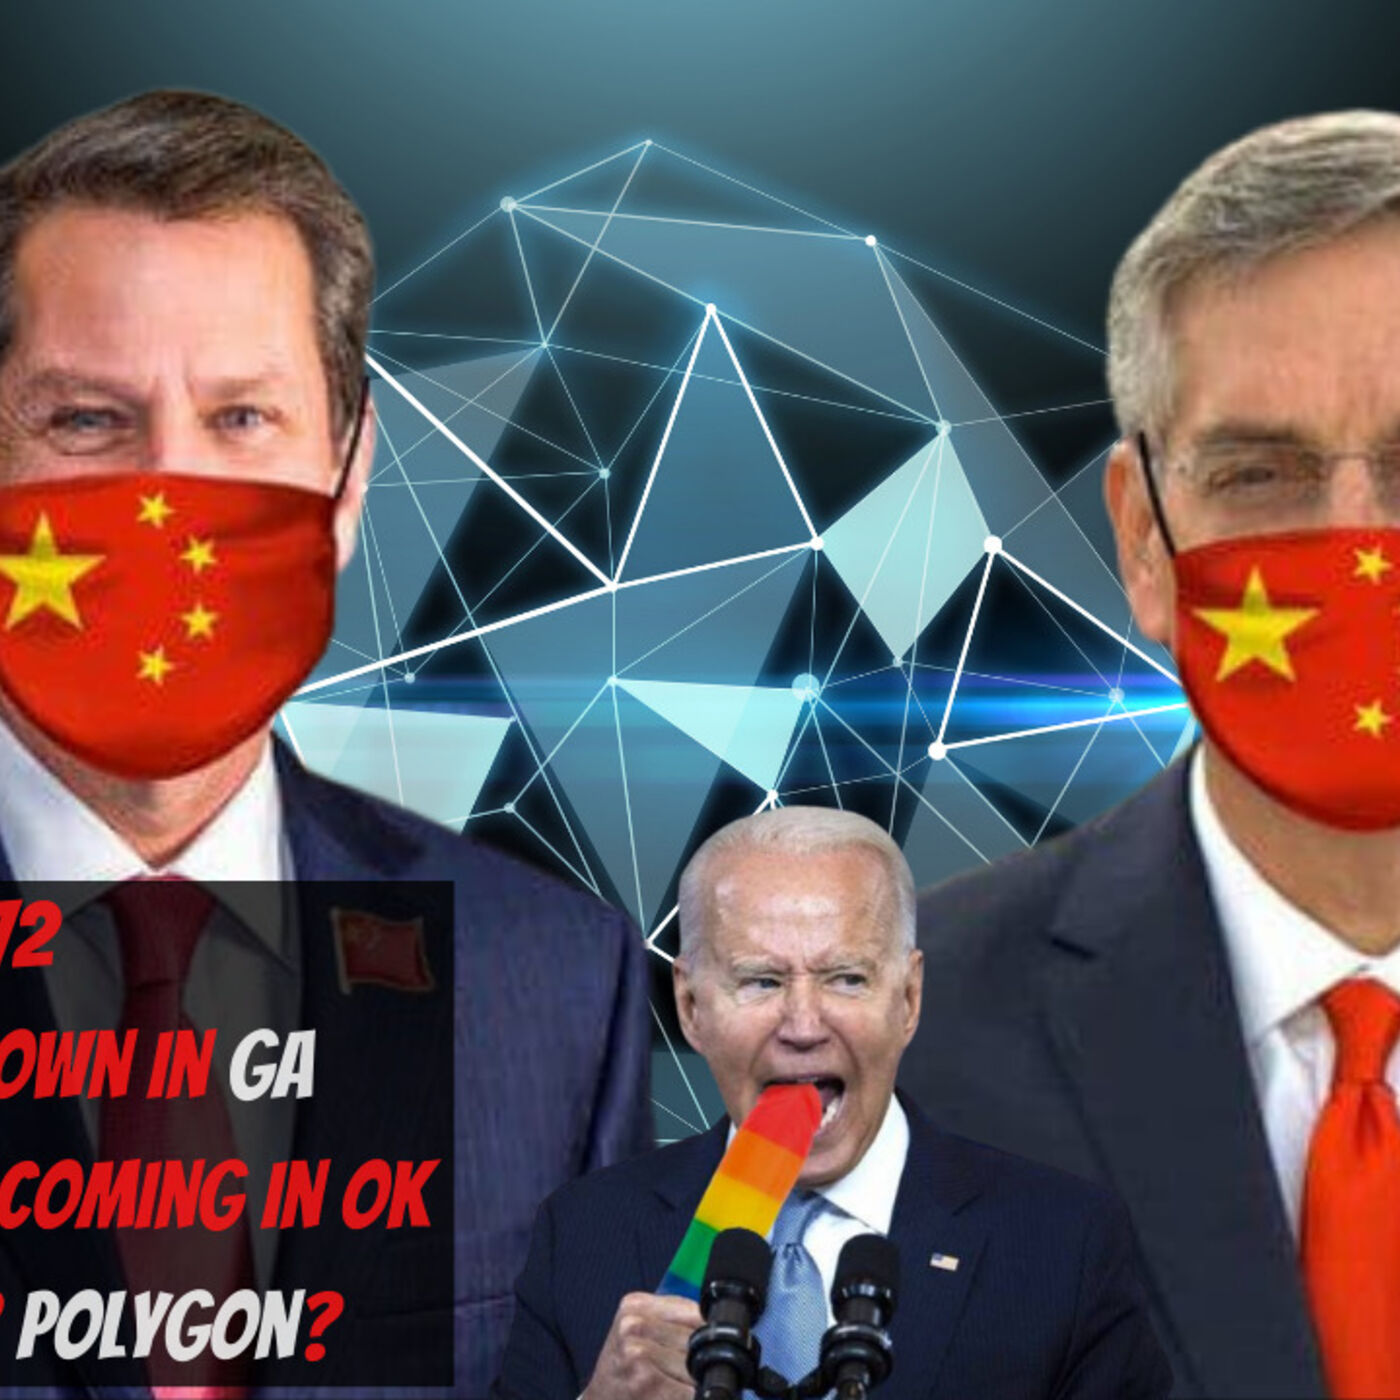 WS#72 Devil Is Down In GA, Forensic Audits Coming To Oklahoma, What Is Cyber Polygon?